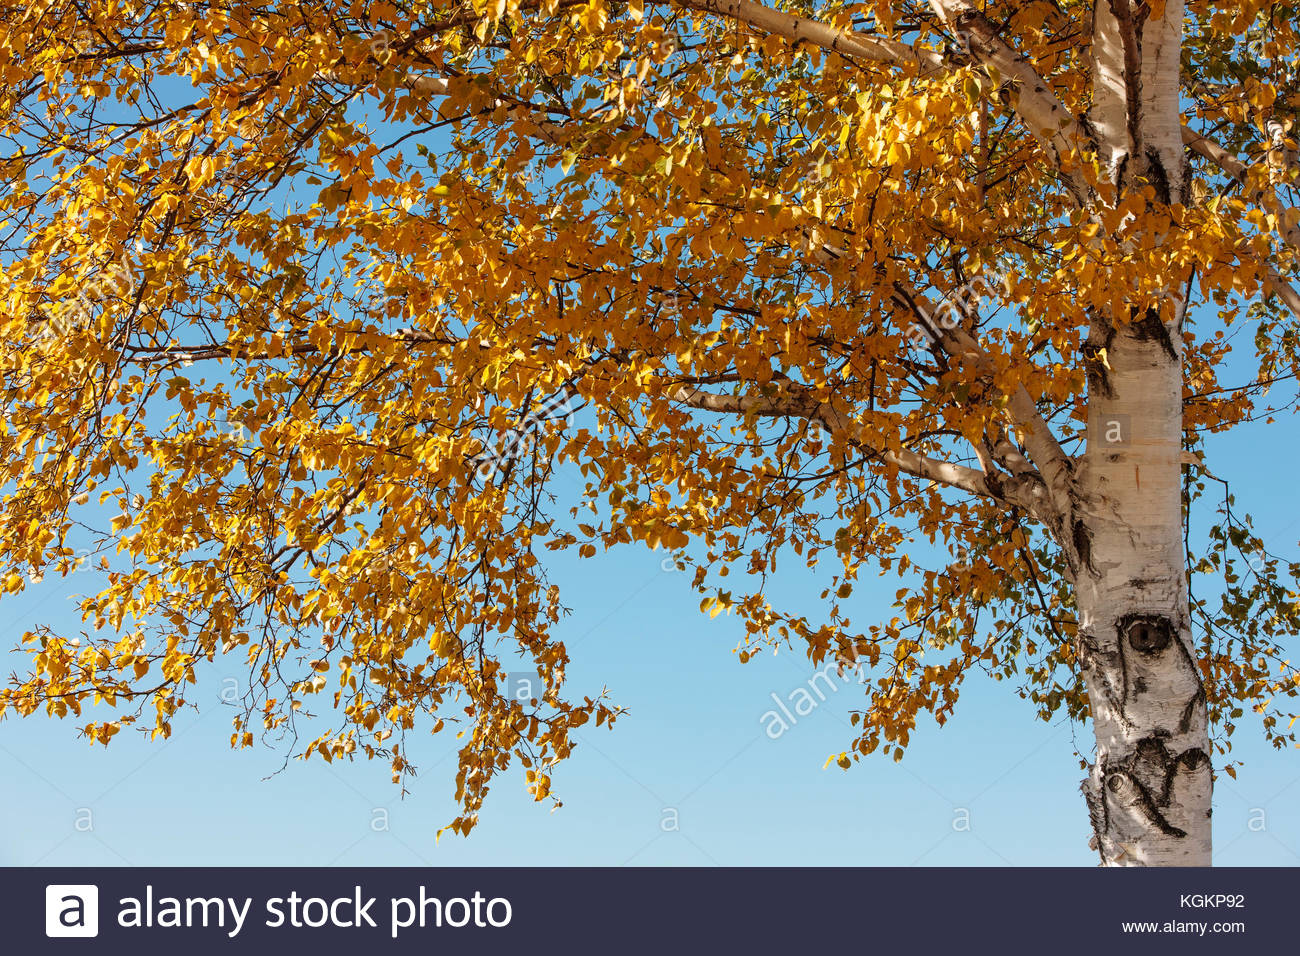 Birch trees, with the leaves changing colors in late October, contrast with the autumn morning sky within the Horicon - Stock Image